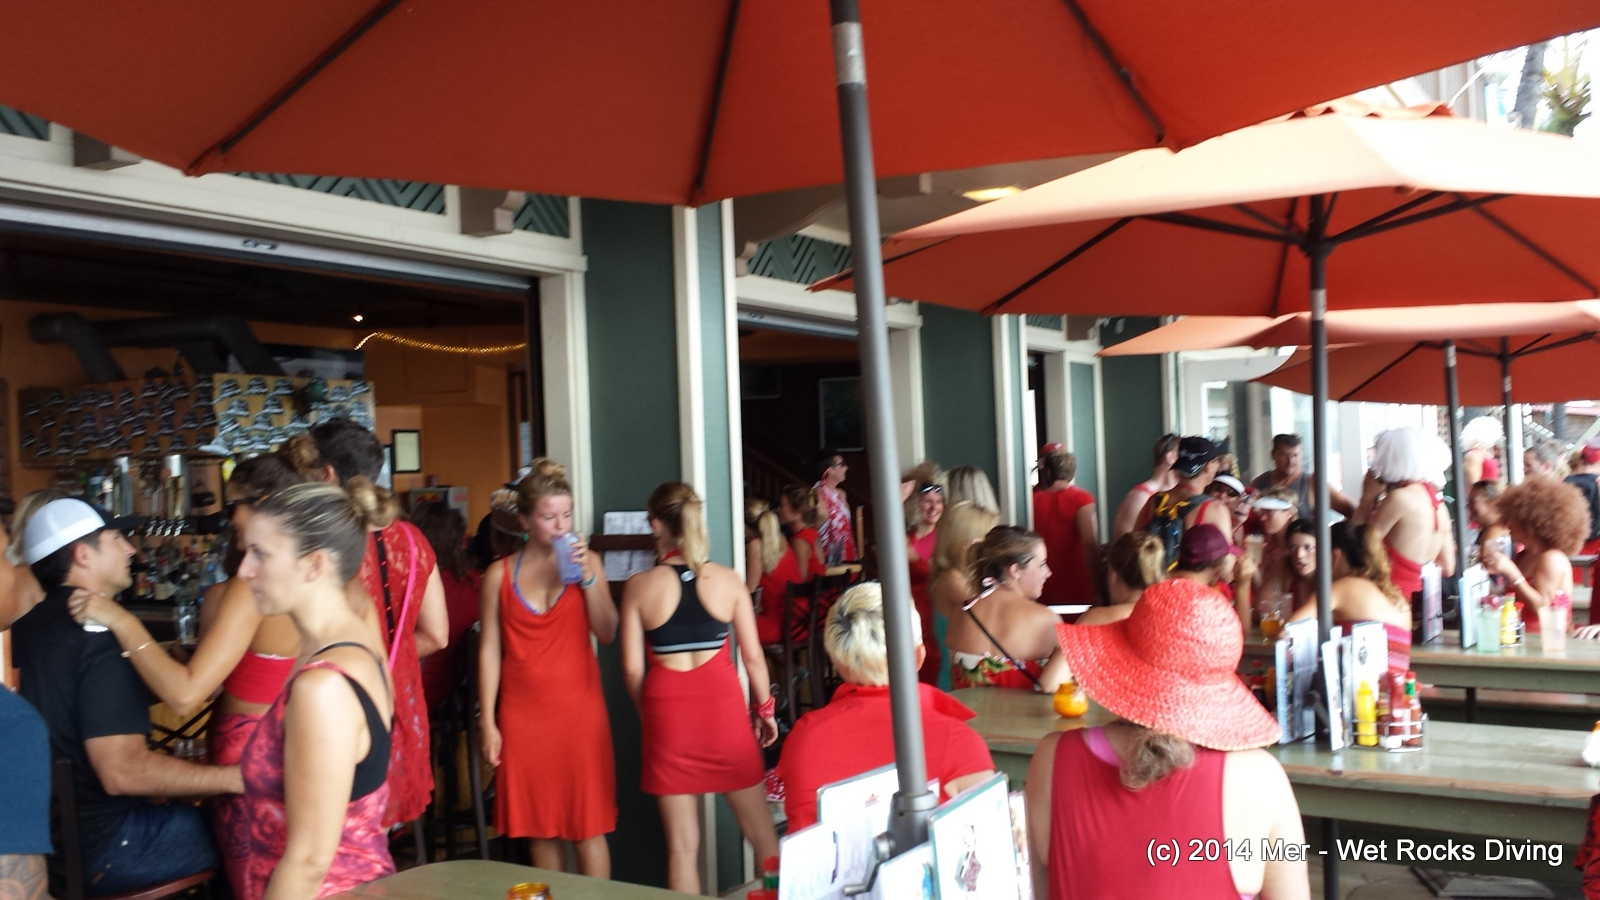 Post Class Celebration: they held a Red Dress Hash Run in our honor, or something